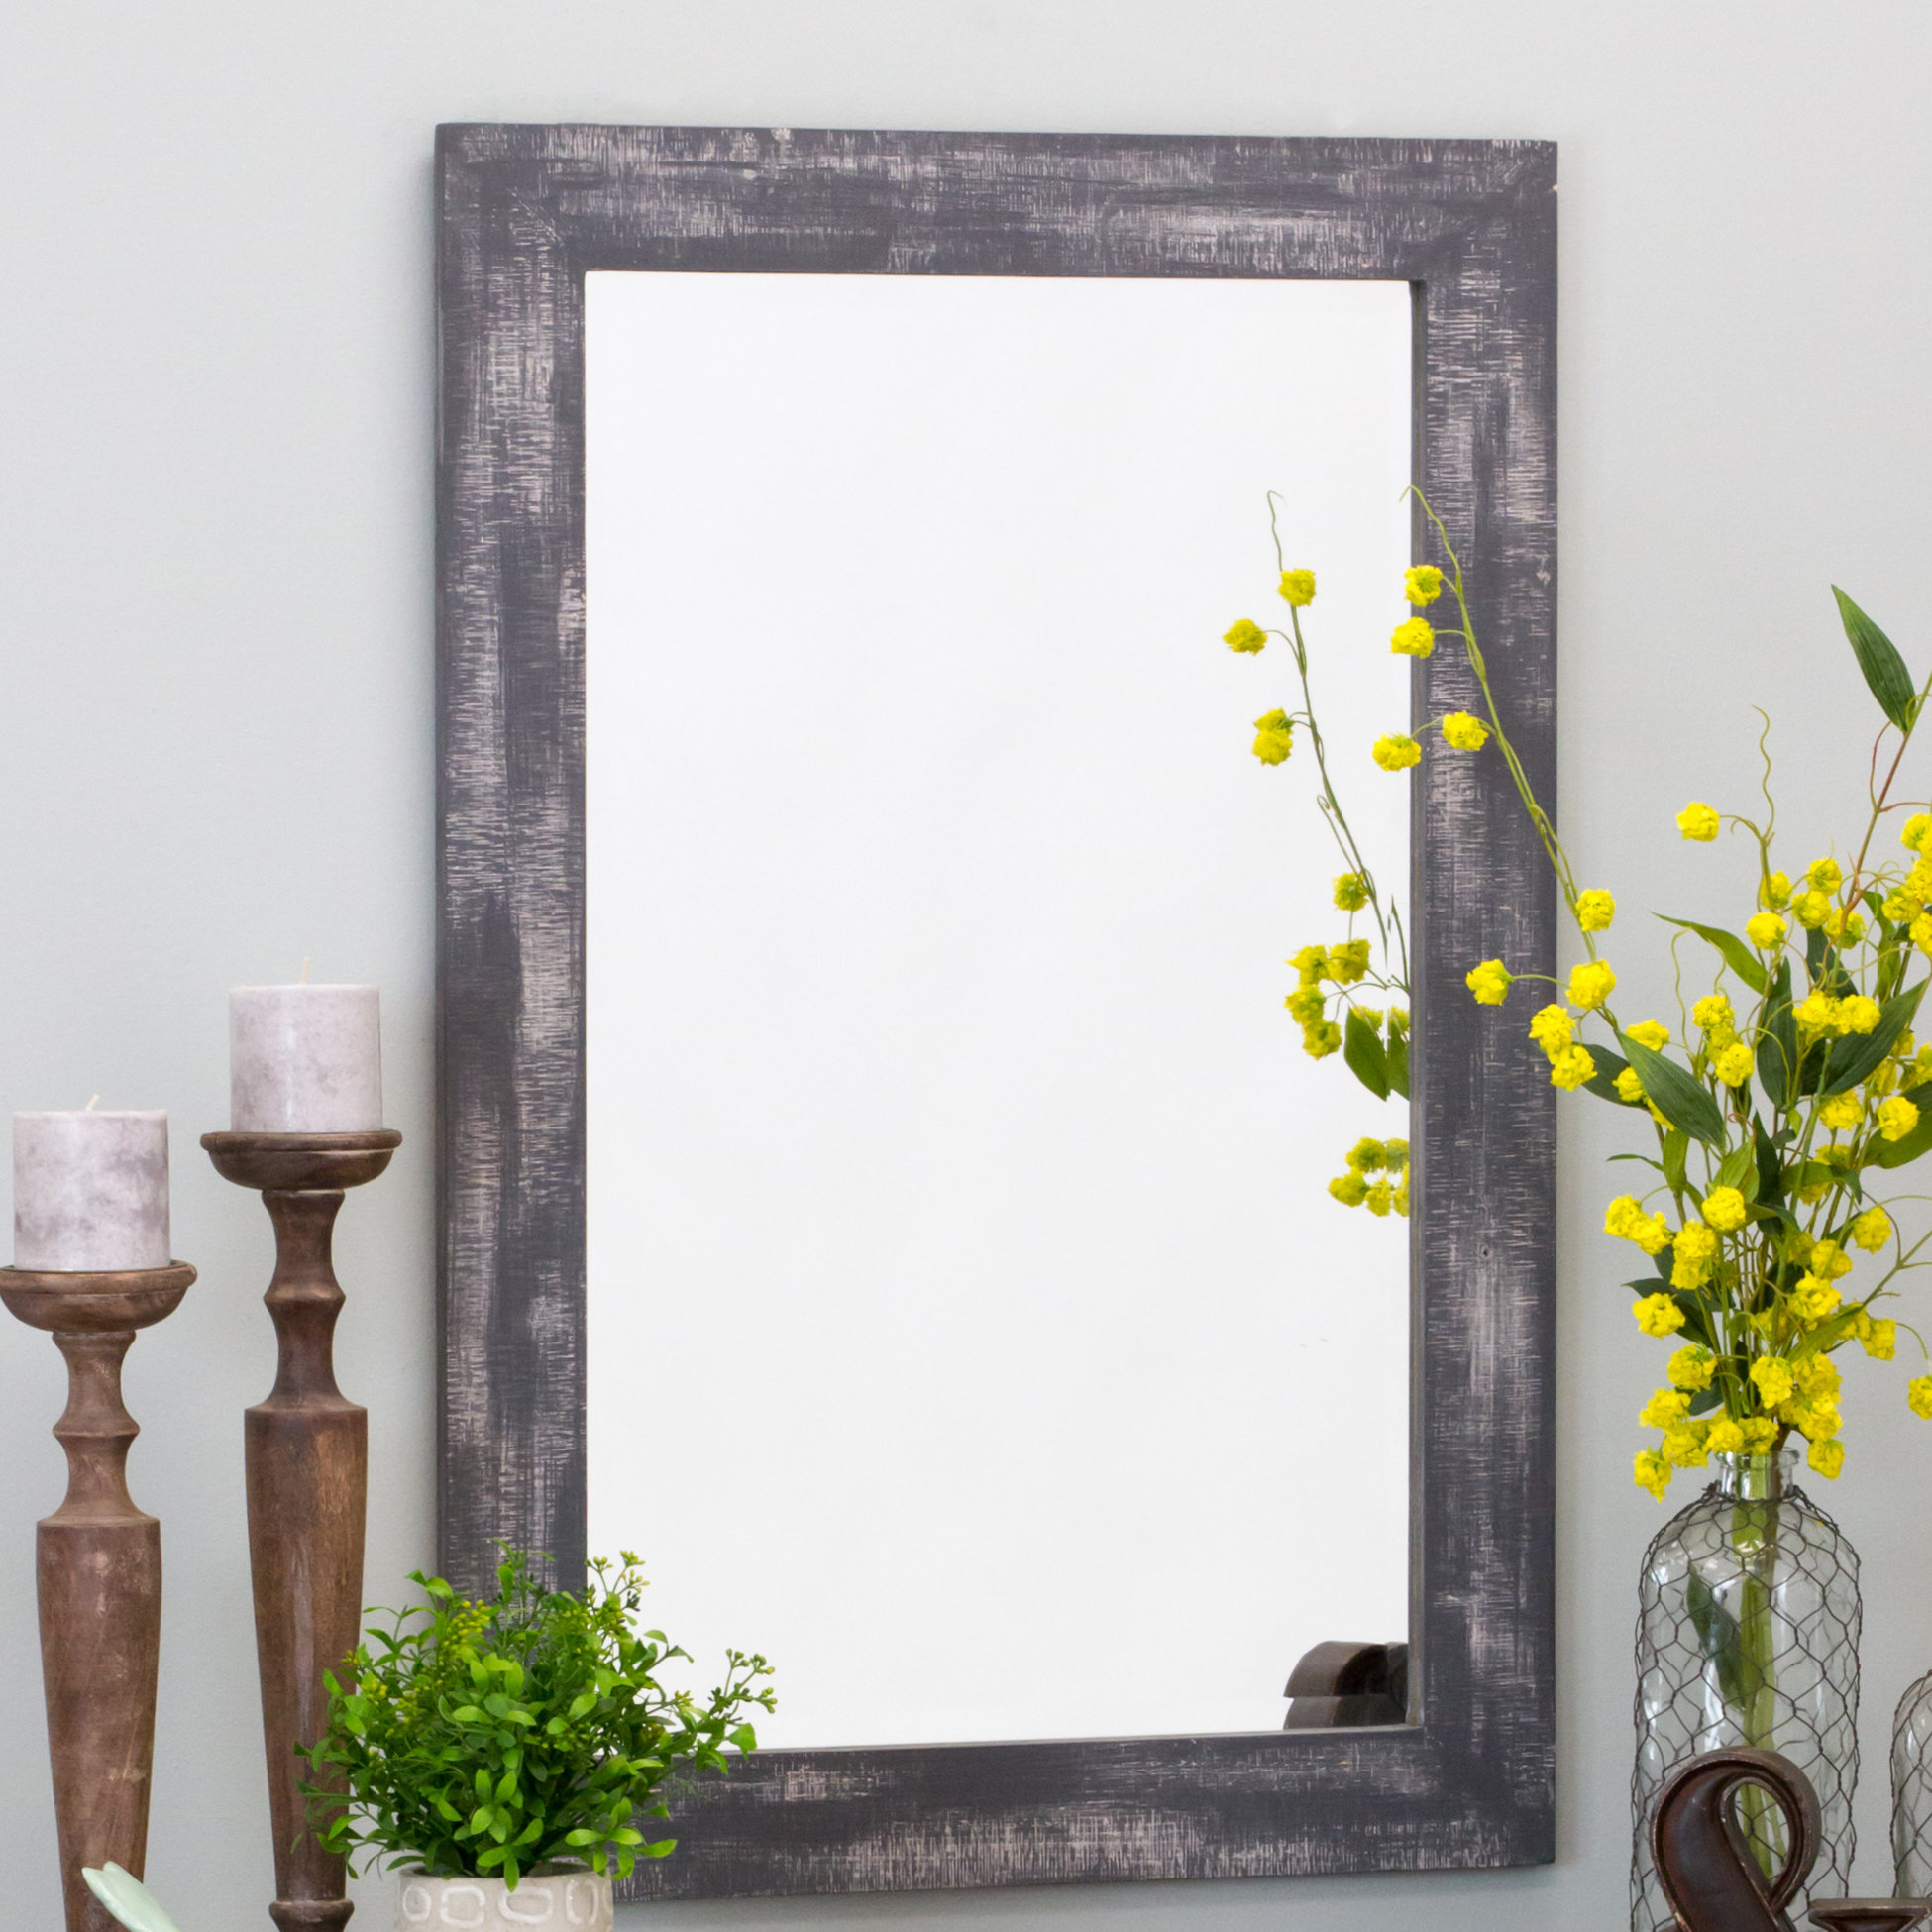 Longwood Rustic Beveled Accent Mirror Within Longwood Rustic Beveled Accent Mirrors (Image 8 of 20)